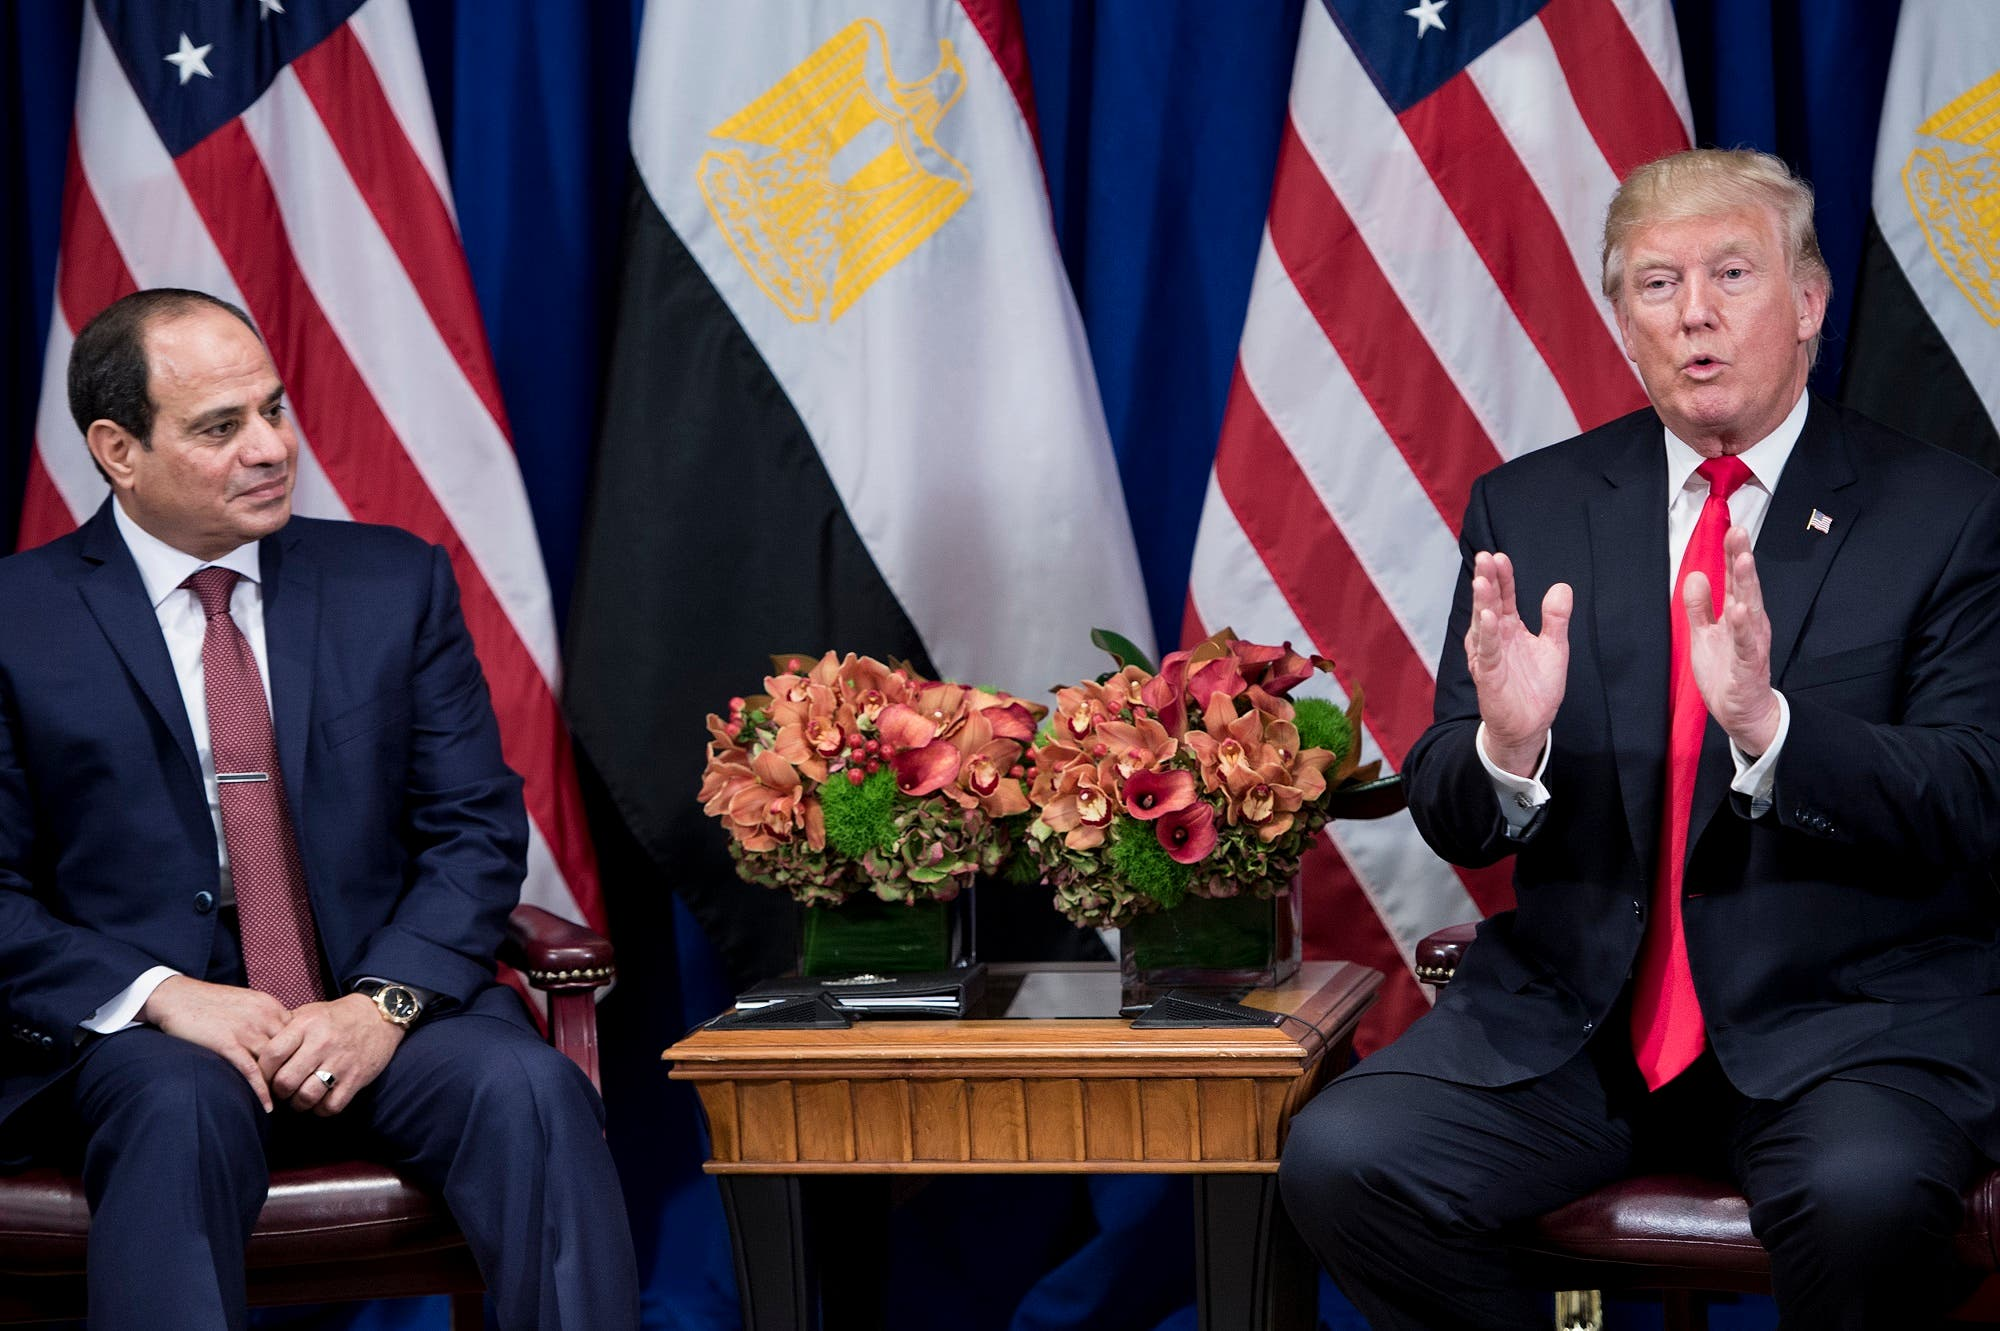 Egypt's President Abdel Fattah el-Sisi with President Trump during the 72nd United Nations General Assembly on September 20, 2017 in New York City. (AFP)